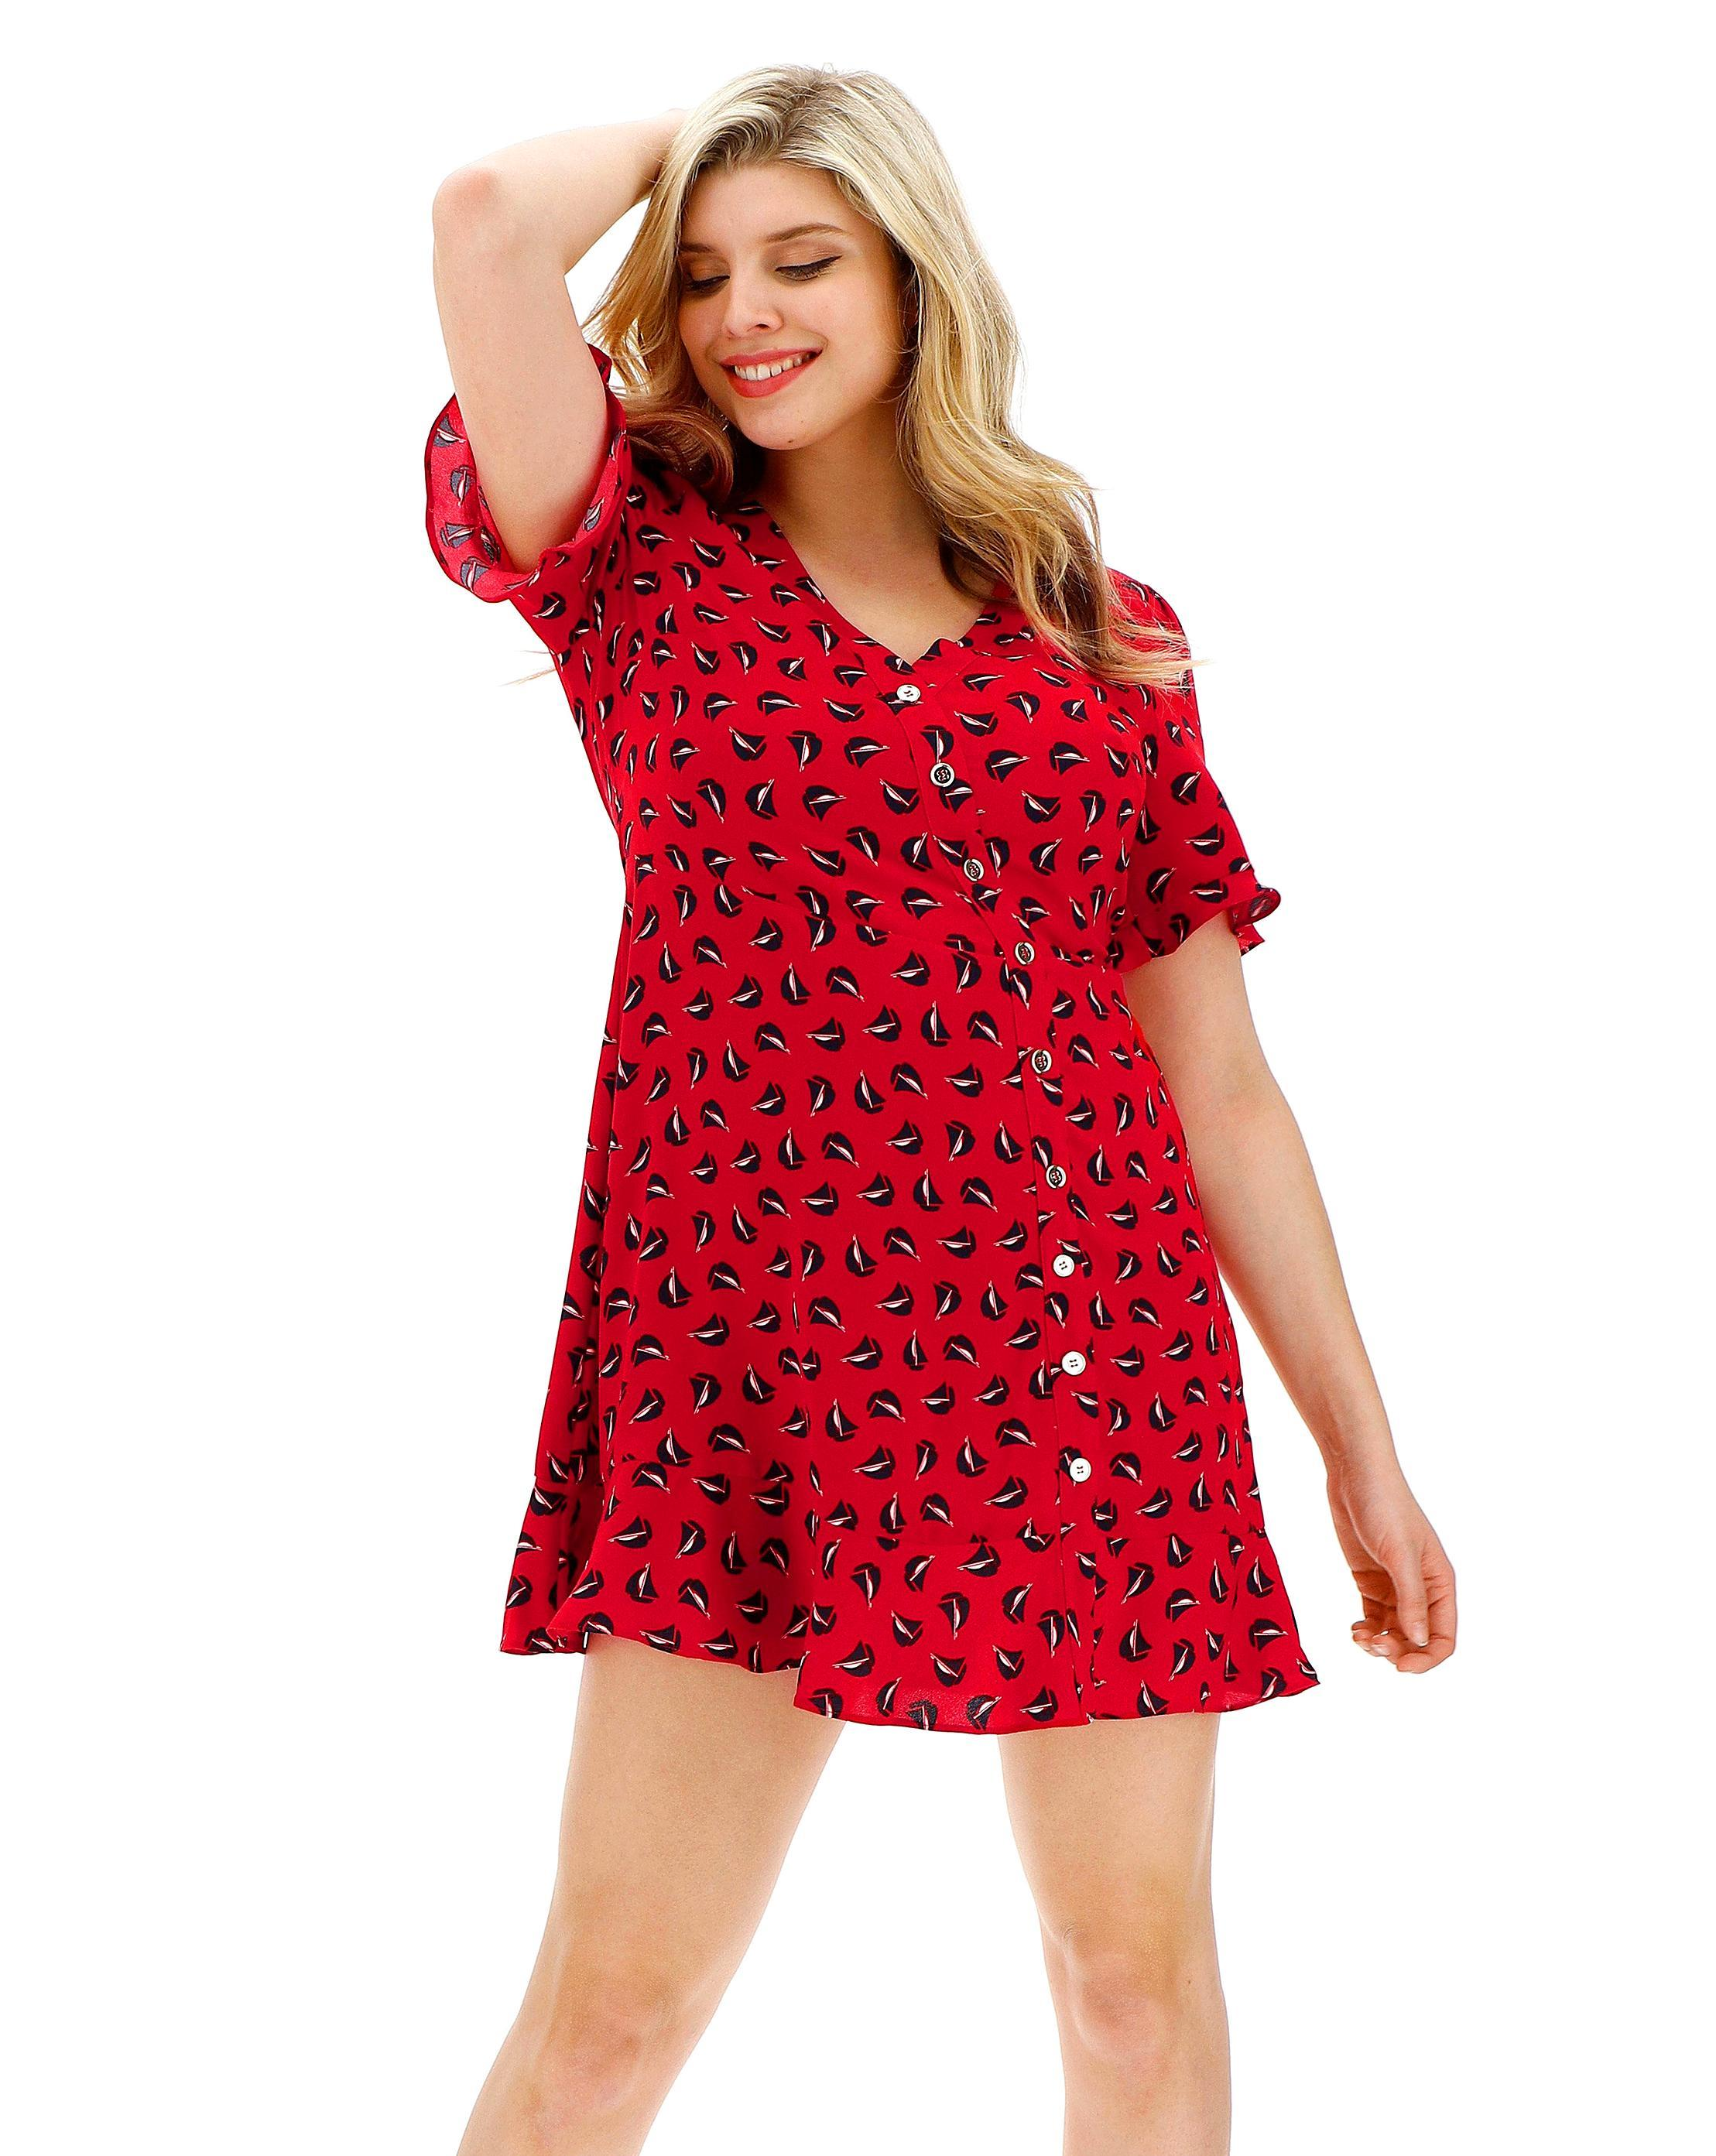 c1c89a739111 Lyst - Simply Be Oasis Curve Boat Print Skater in Red